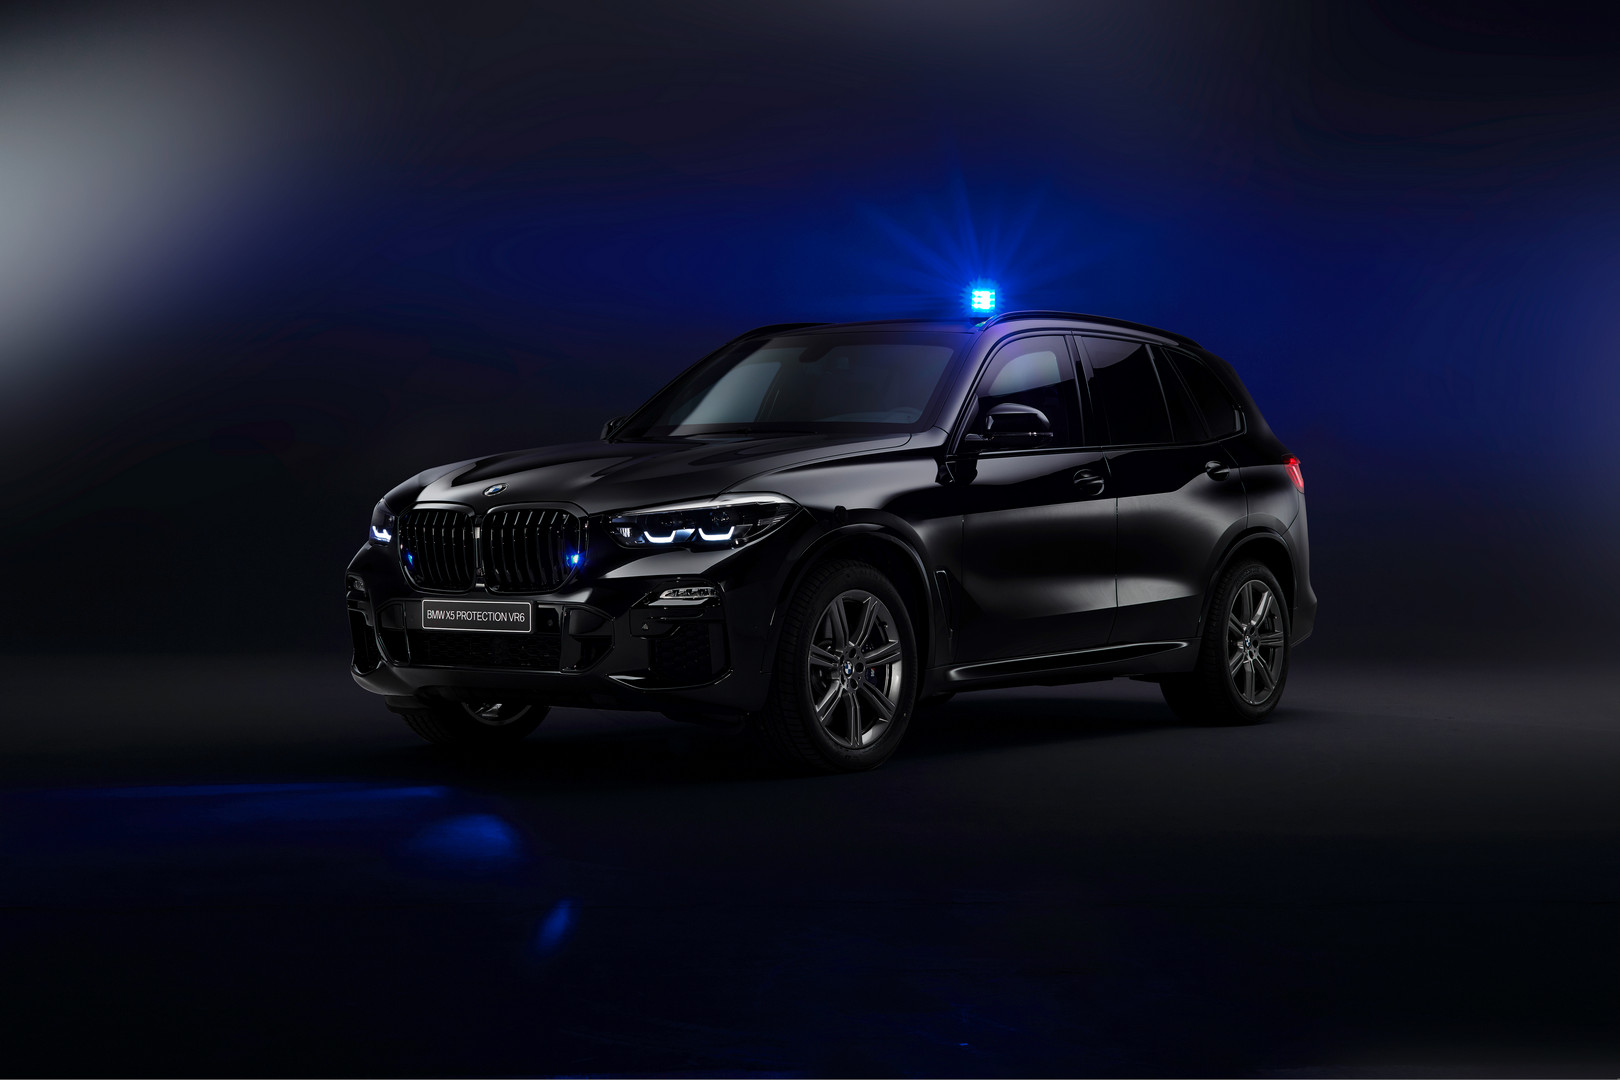 BMW X5 Protection VR6 Wallpaper